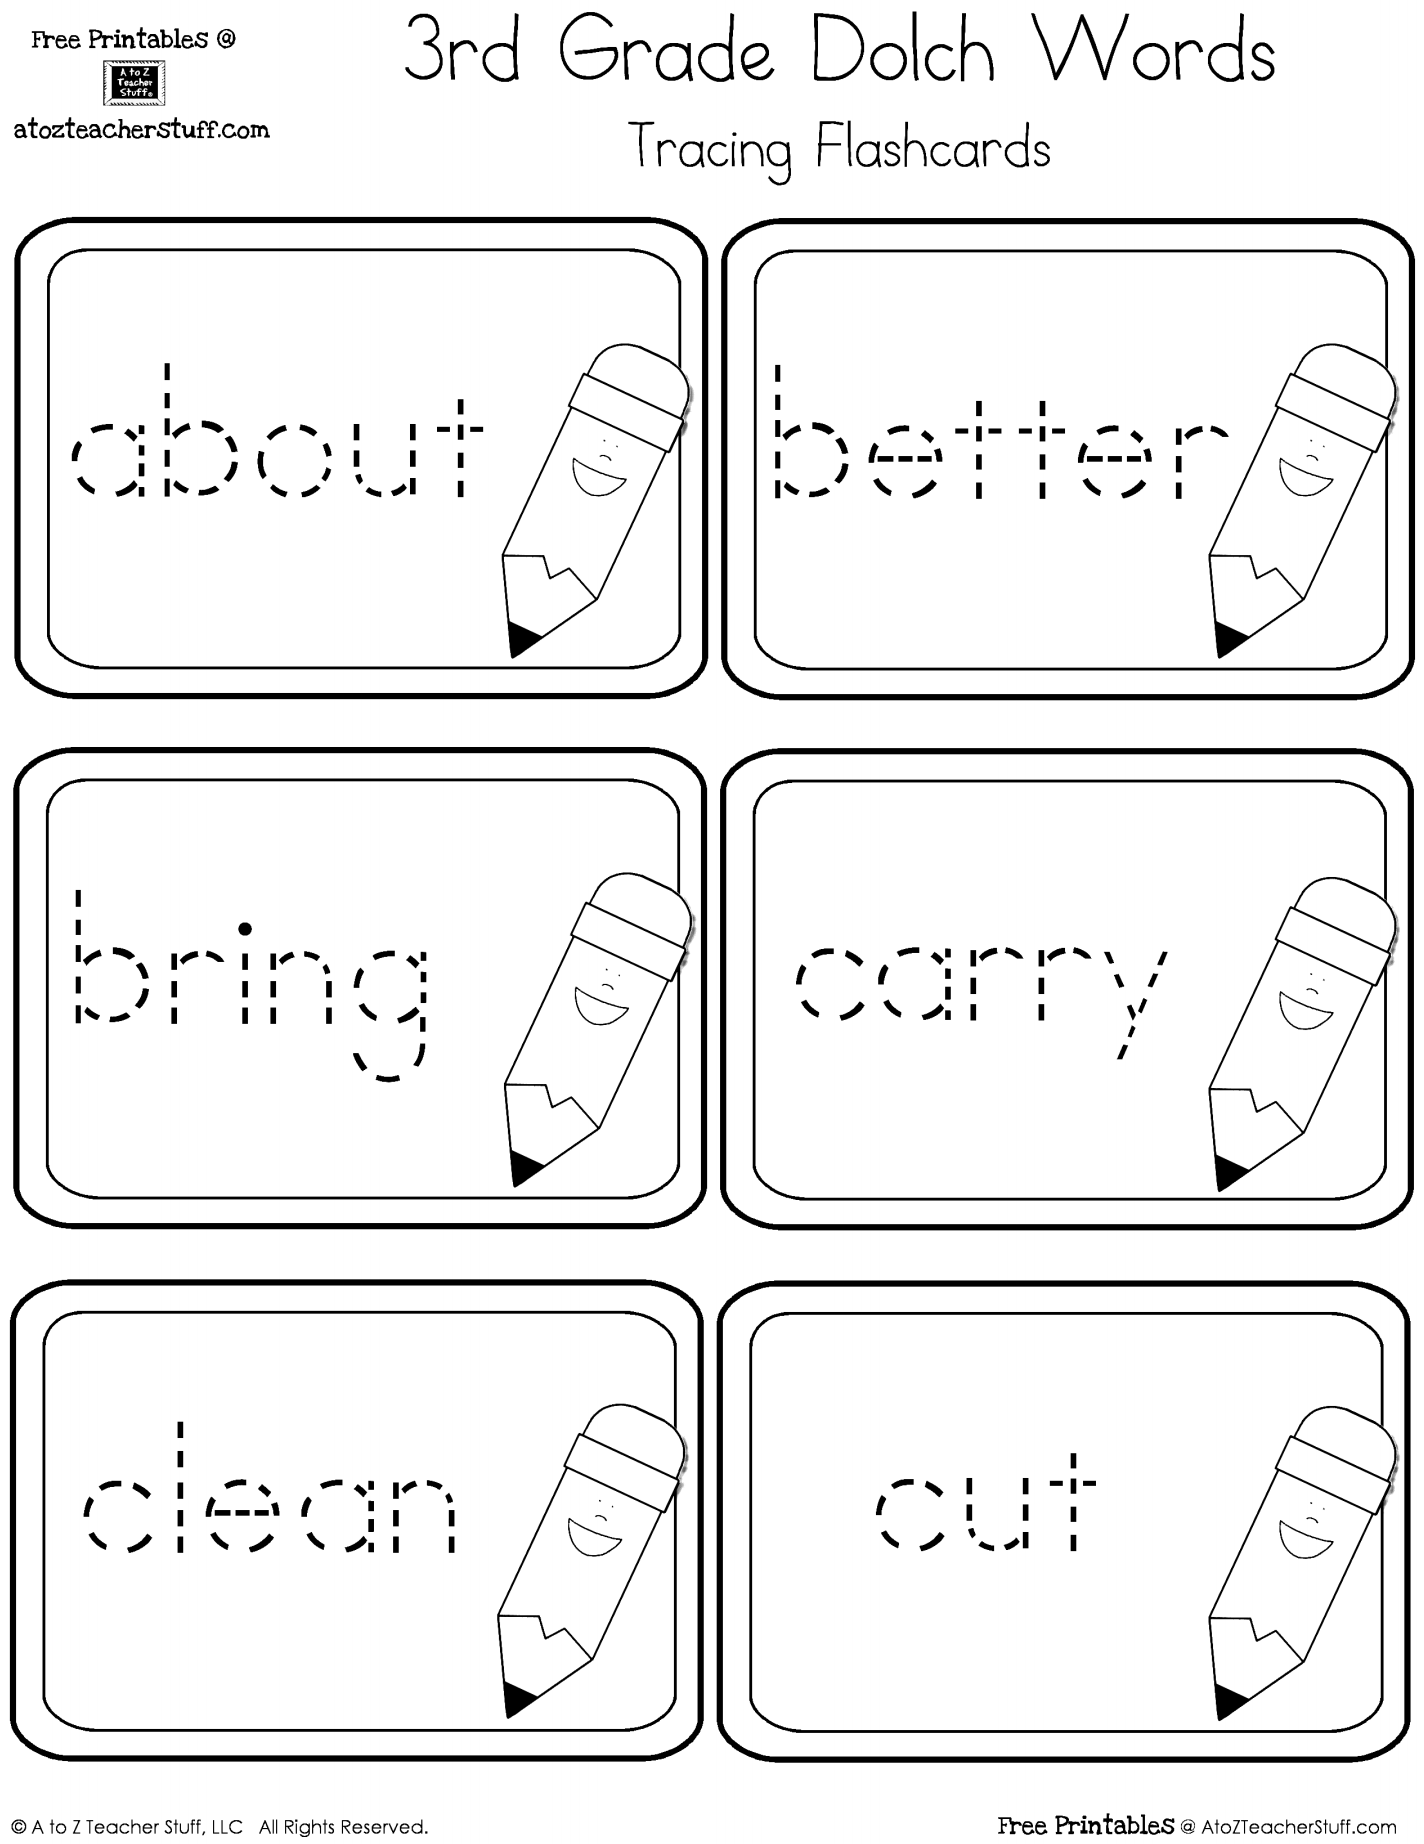 Worksheet Sight Word Flashcards third grade dolch sight words tracing flashcards a to z teacher 3rd cards free printables